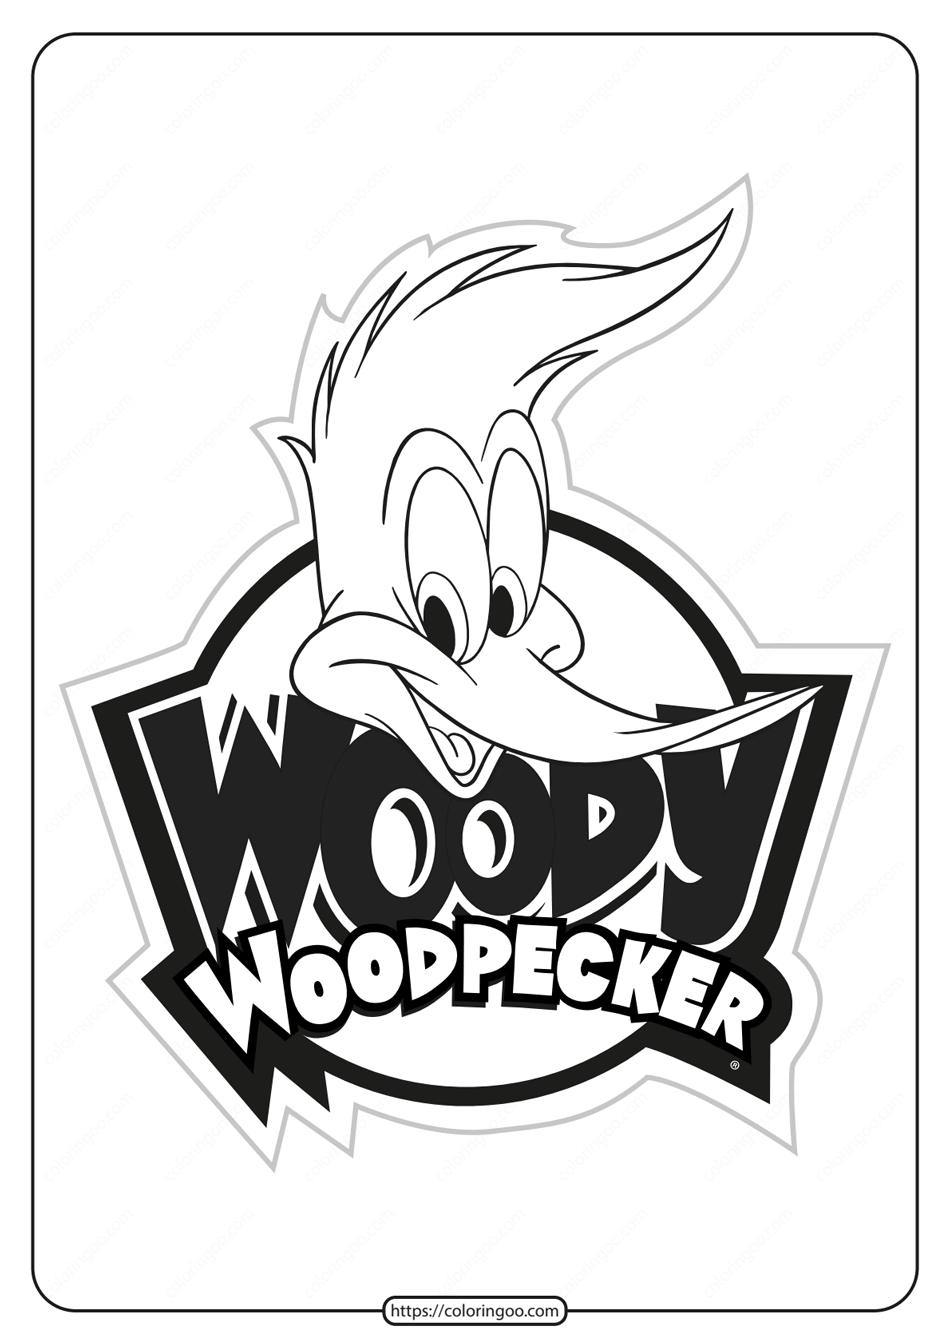 Free Printable Woody Woodpecker Coloring Pages 02